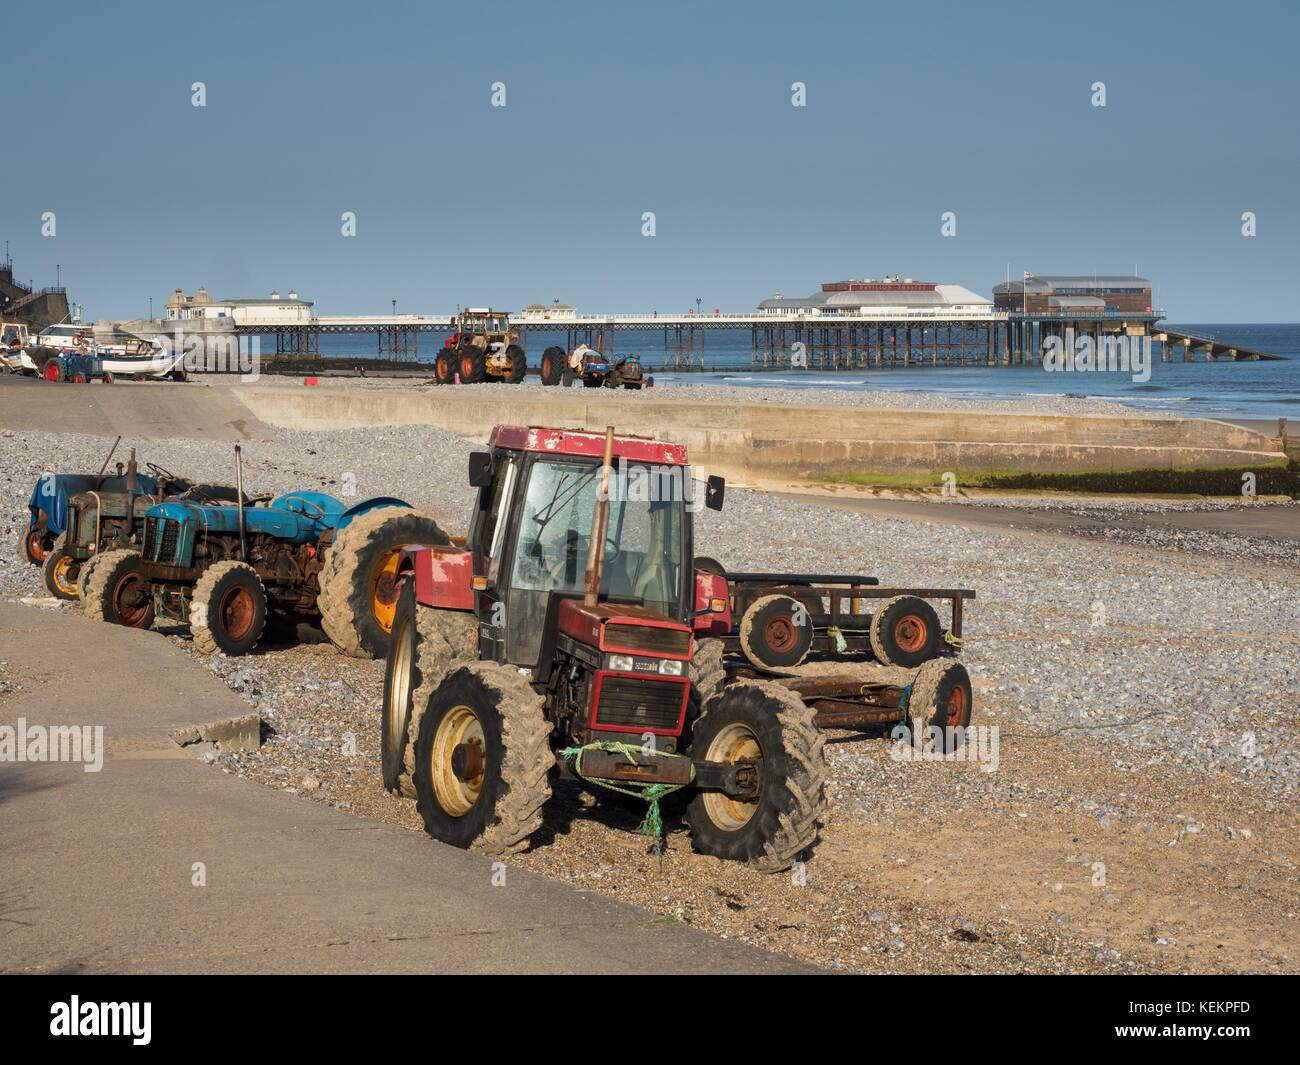 Fishermens tractors on the beach at sunny Cromer, Norfolk, England - Stock Image